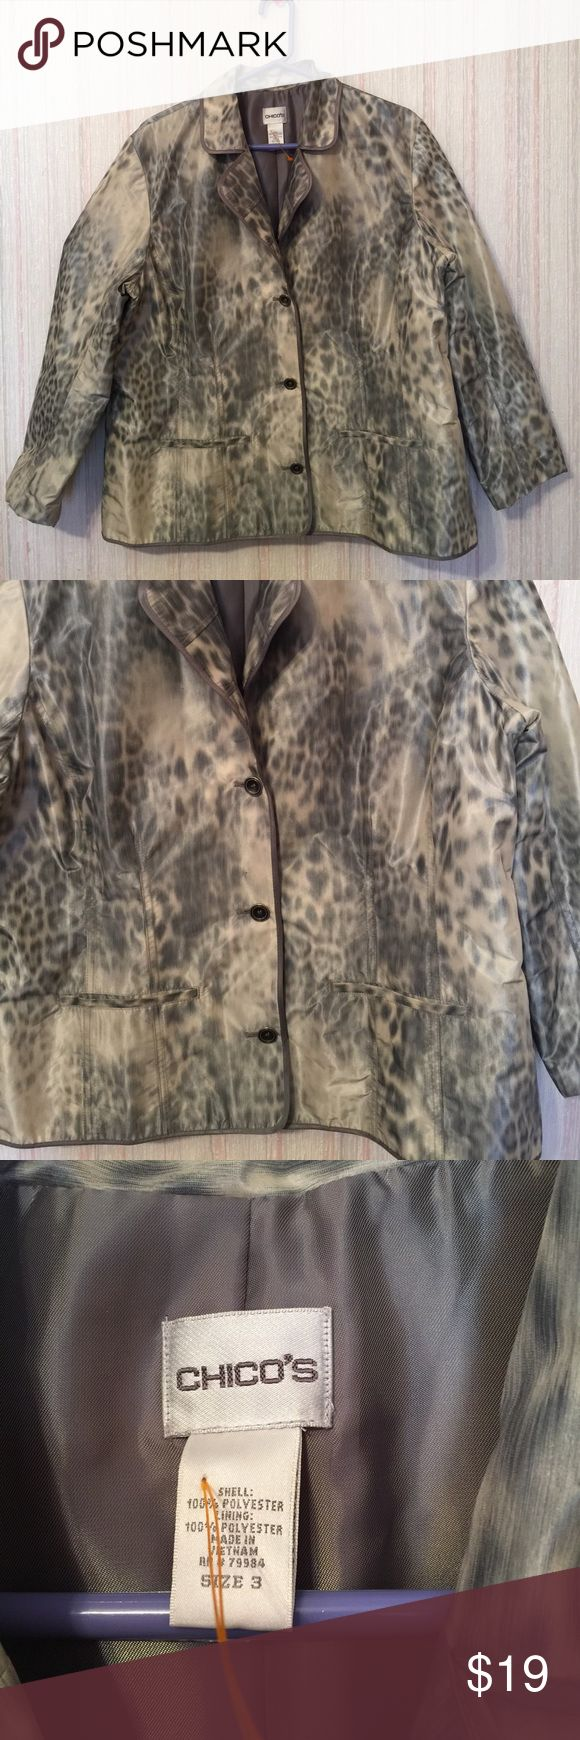 "Chico's Women's Light Wear Blazer Sz Large Lovely Chico's Lighwear Button Down Jacket Cheetah Animal Print Gray 100% Polyester Size Large. Measurement: Sleeves: 22"" Shoulder: 18"" Armpit: 26"" Overall Length: 46"" Condition: Pre-owned, no rips, no holes, clean. In good condition. Chico's Jackets & Coats Blazers"